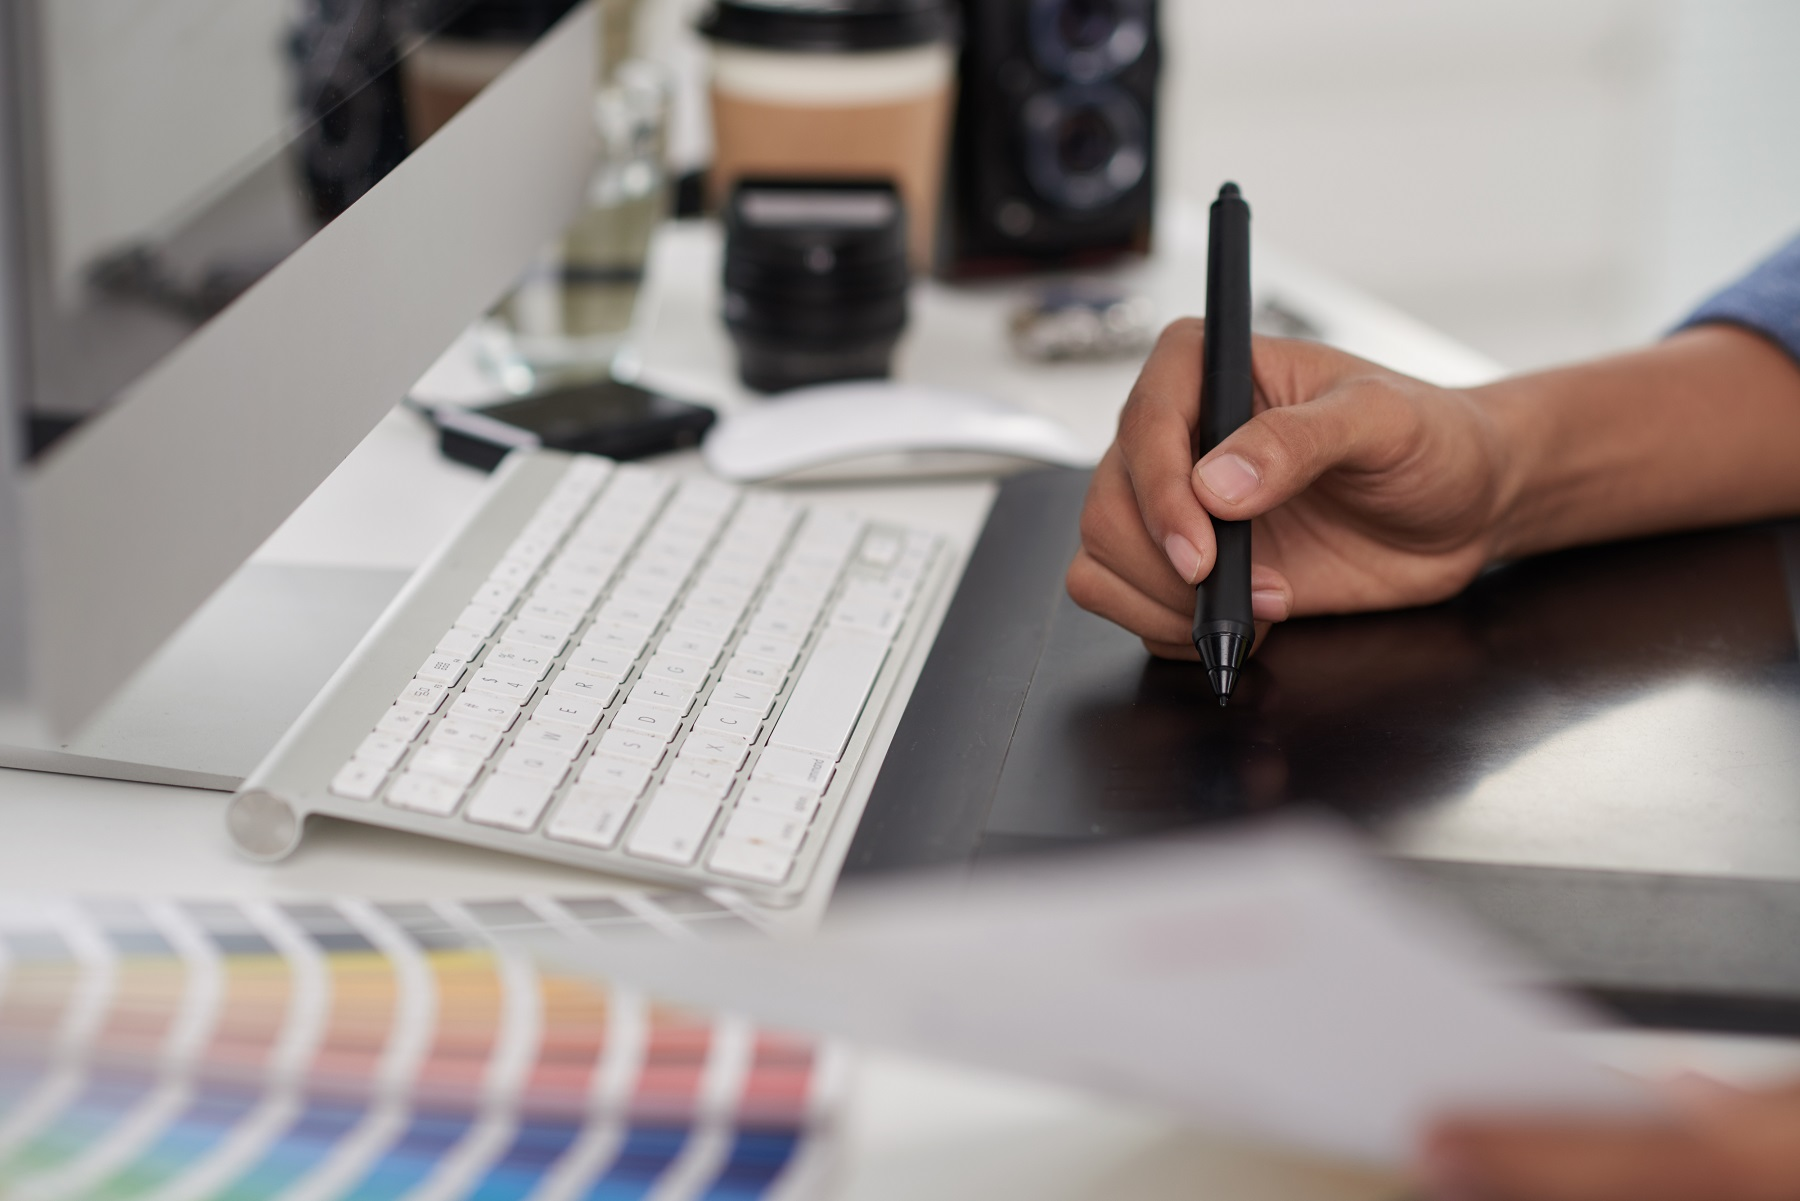 designer customising options with software and hardware